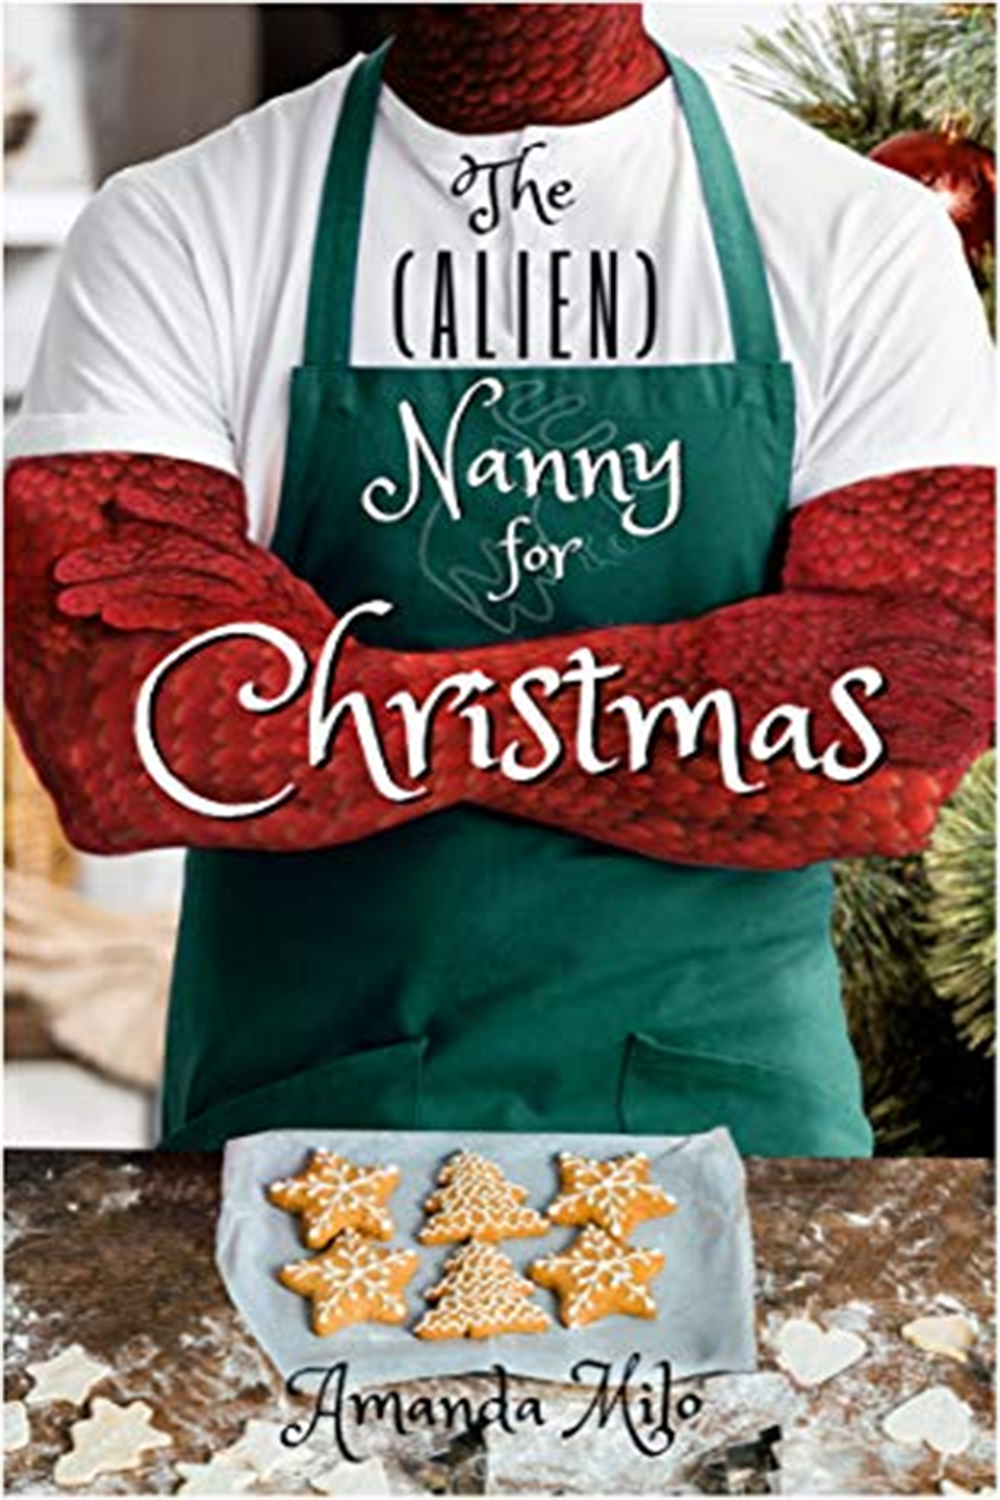 S1 E29 The (Alien) Nanny for Christmas by Amanda Milo